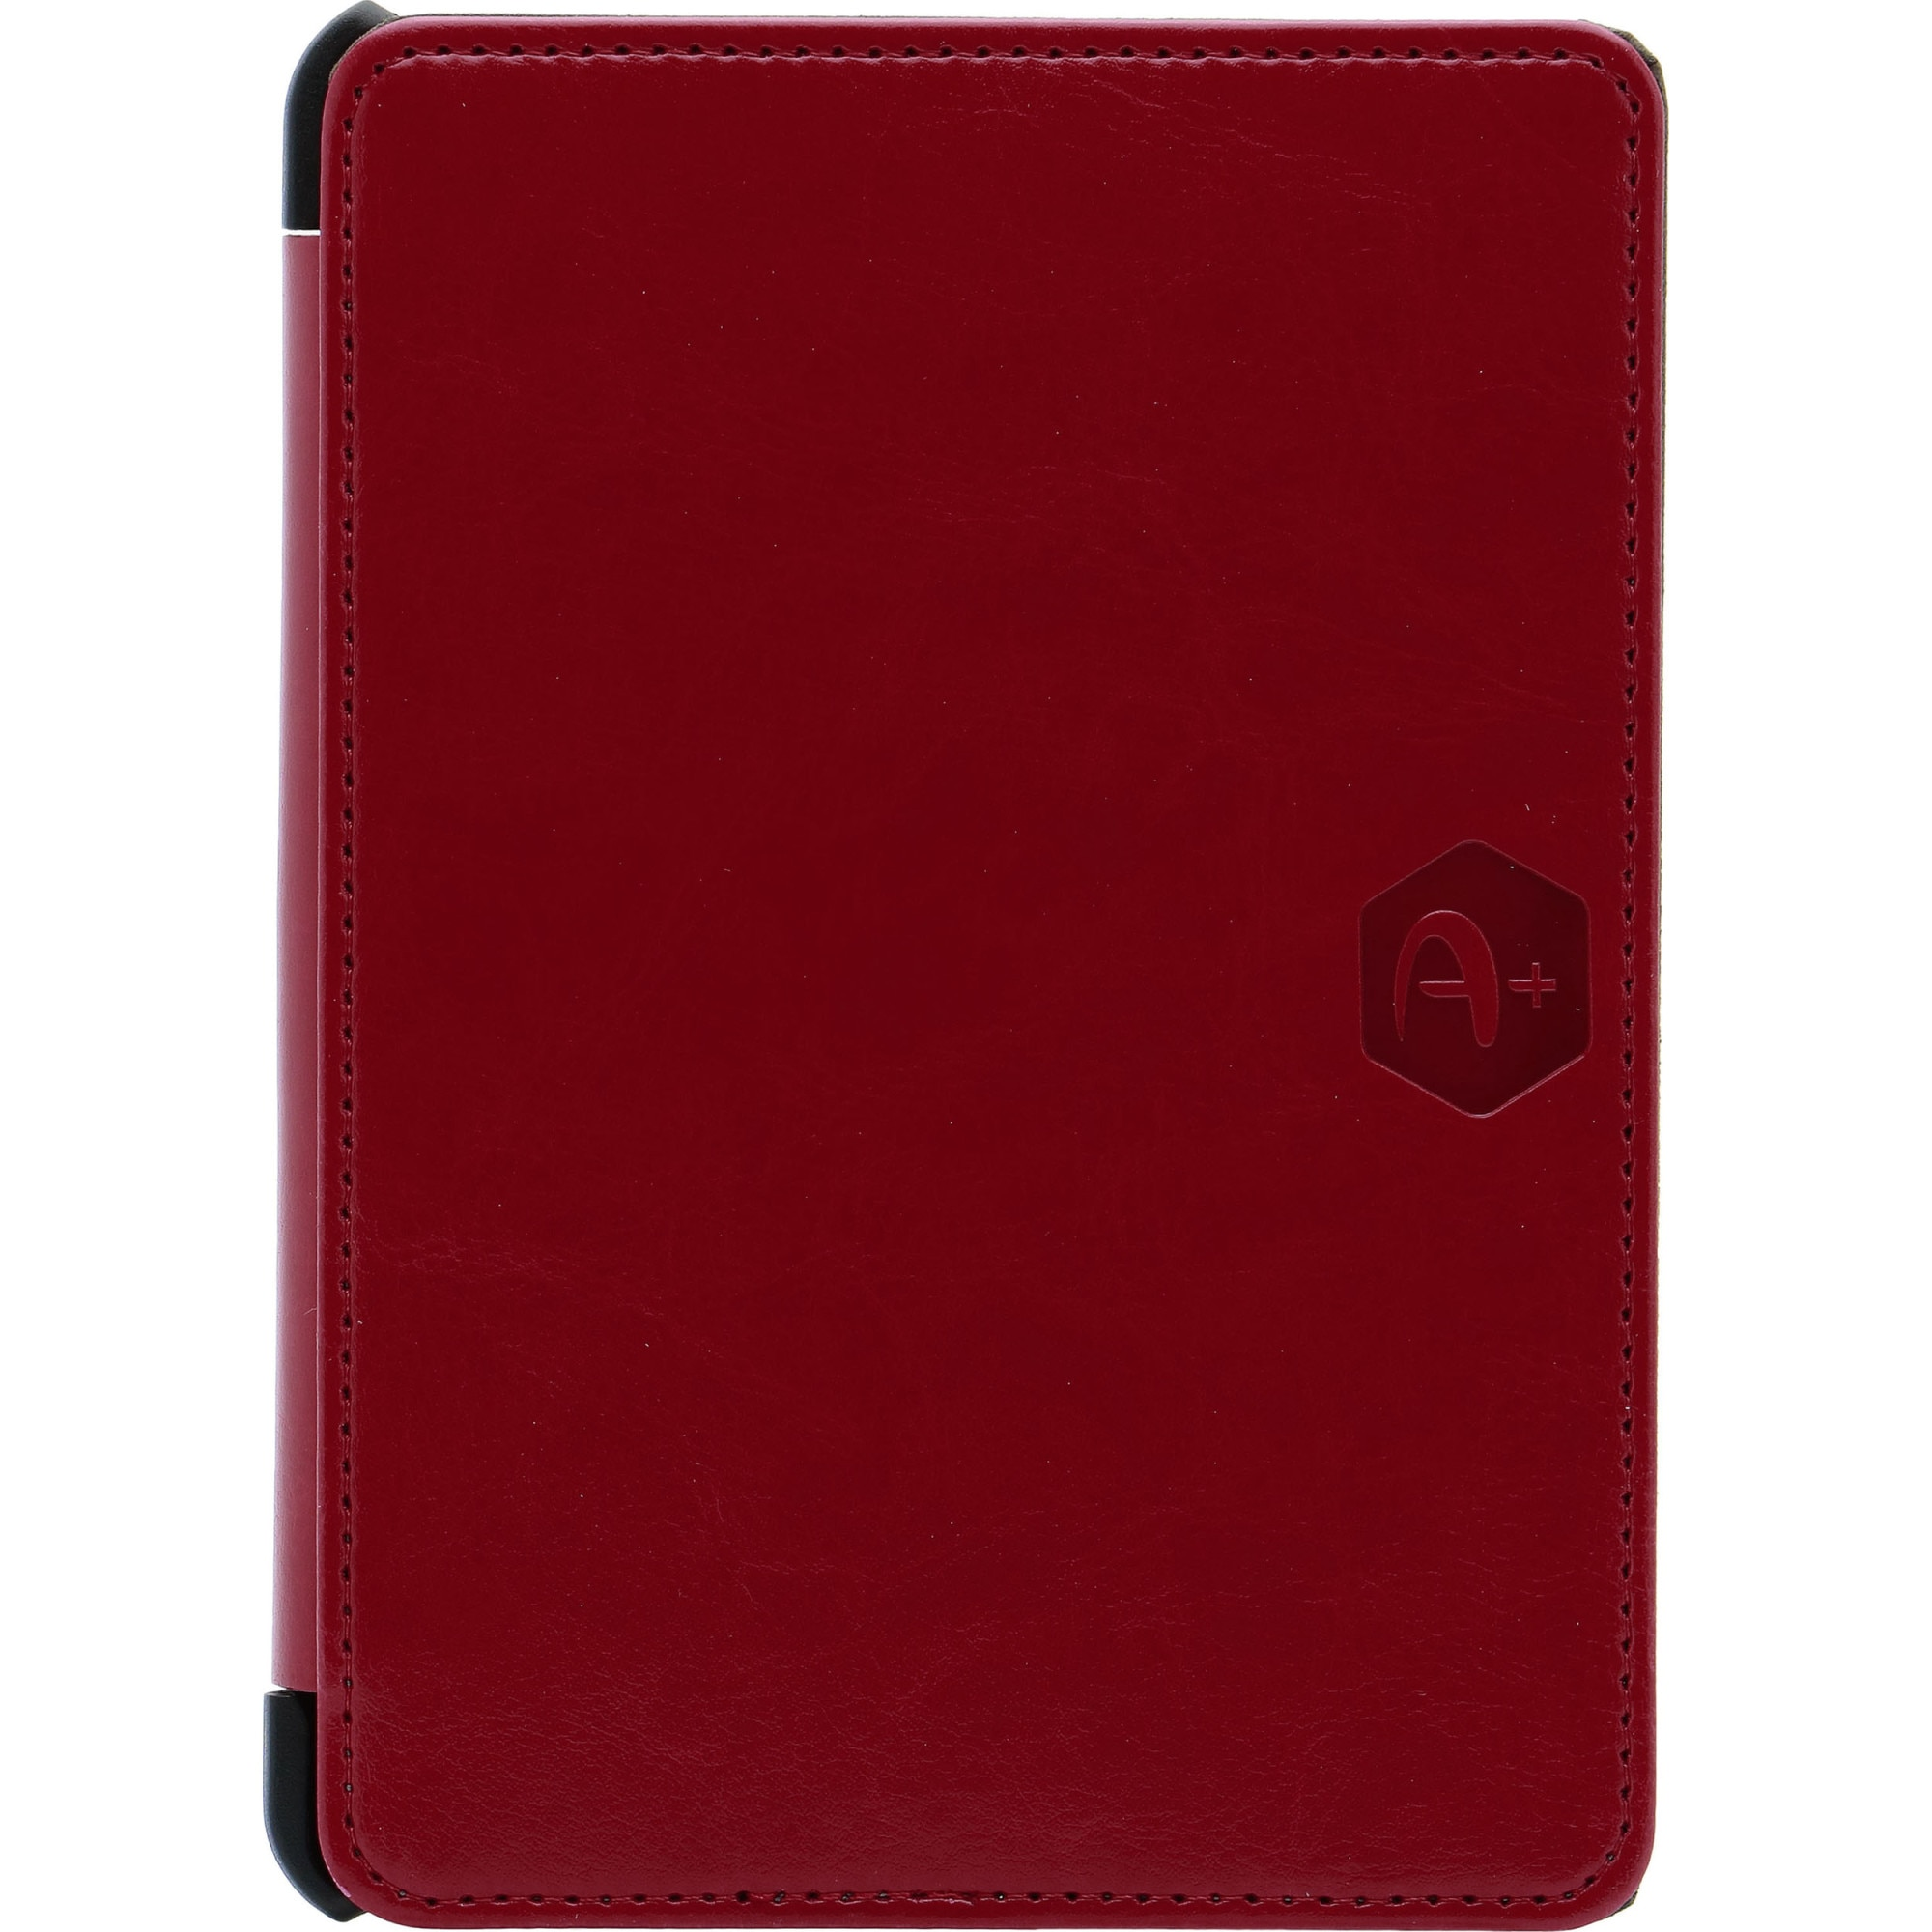 Fotografie Husa de protectie A+ Slim pentru Kindle Paperwhite 4 (10th Generation-2018), Hand red